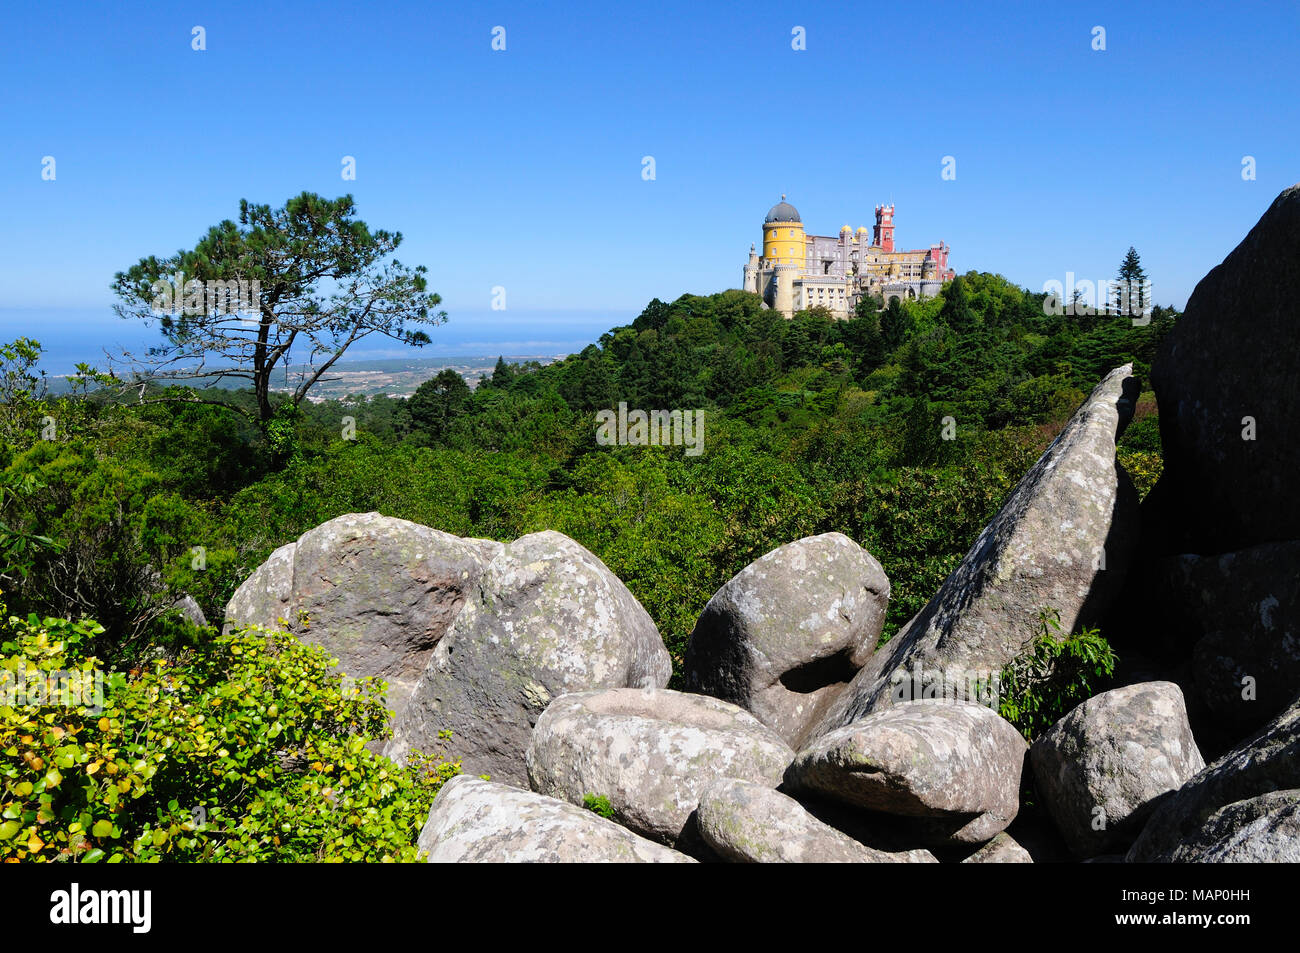 Palácio da Pena, built in the 19th century, in the hills above Sintra, in the middle of a UNESCO World Heritage Site. Sintra, Portugal Stock Photo